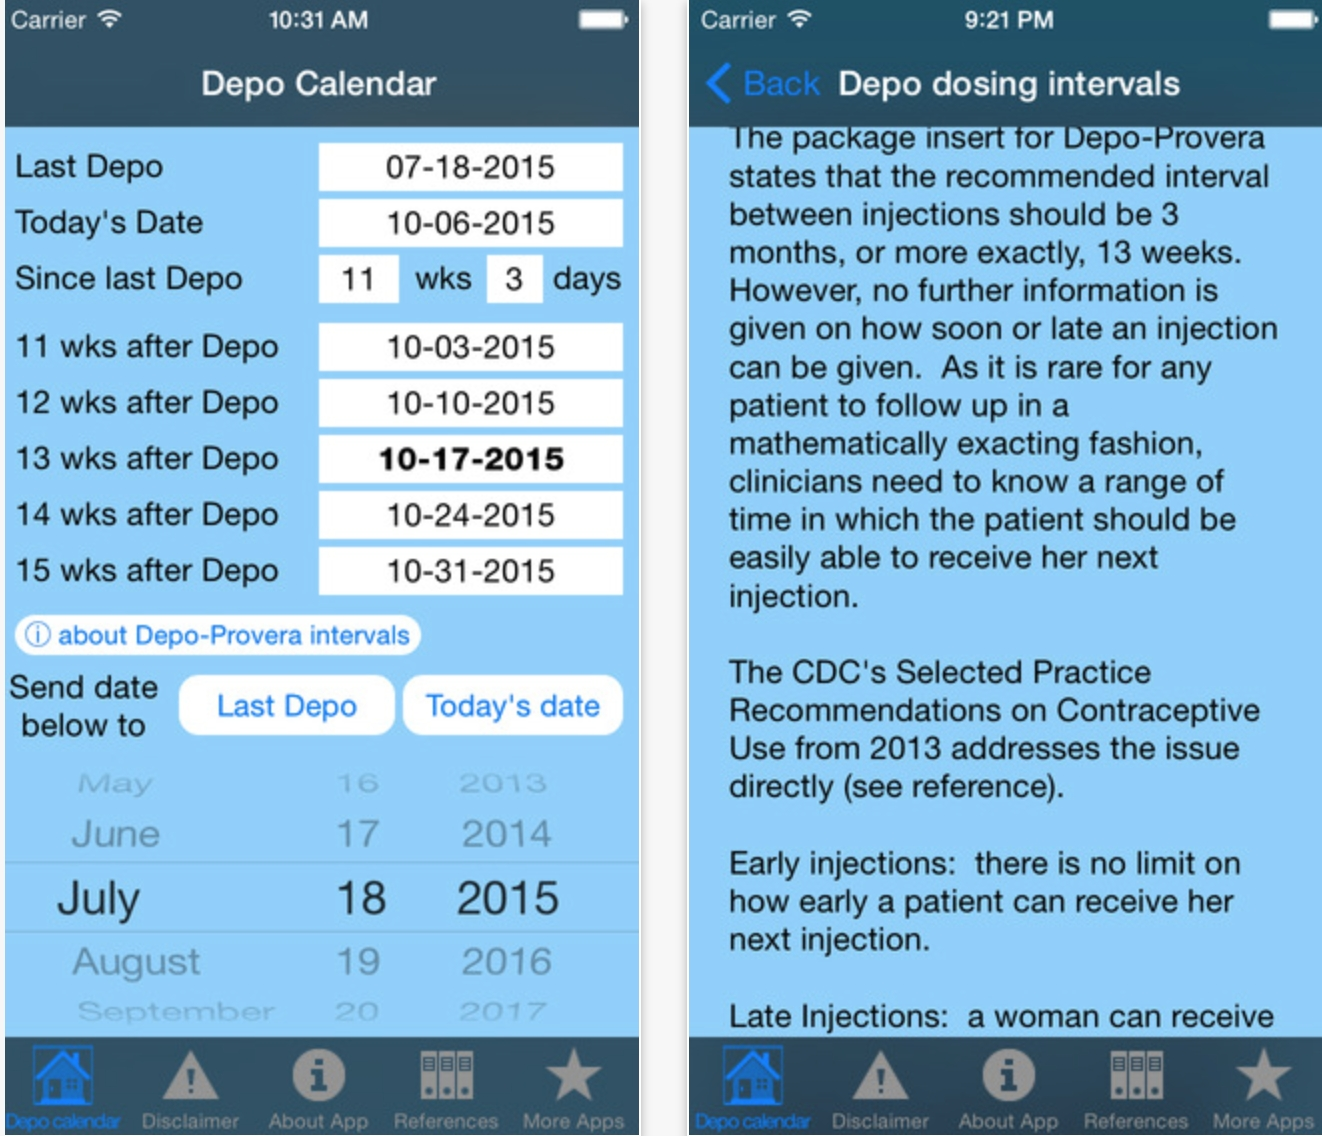 Depo Calendar App Could Significantly Improve Contraception  15 Week Depo Calendar